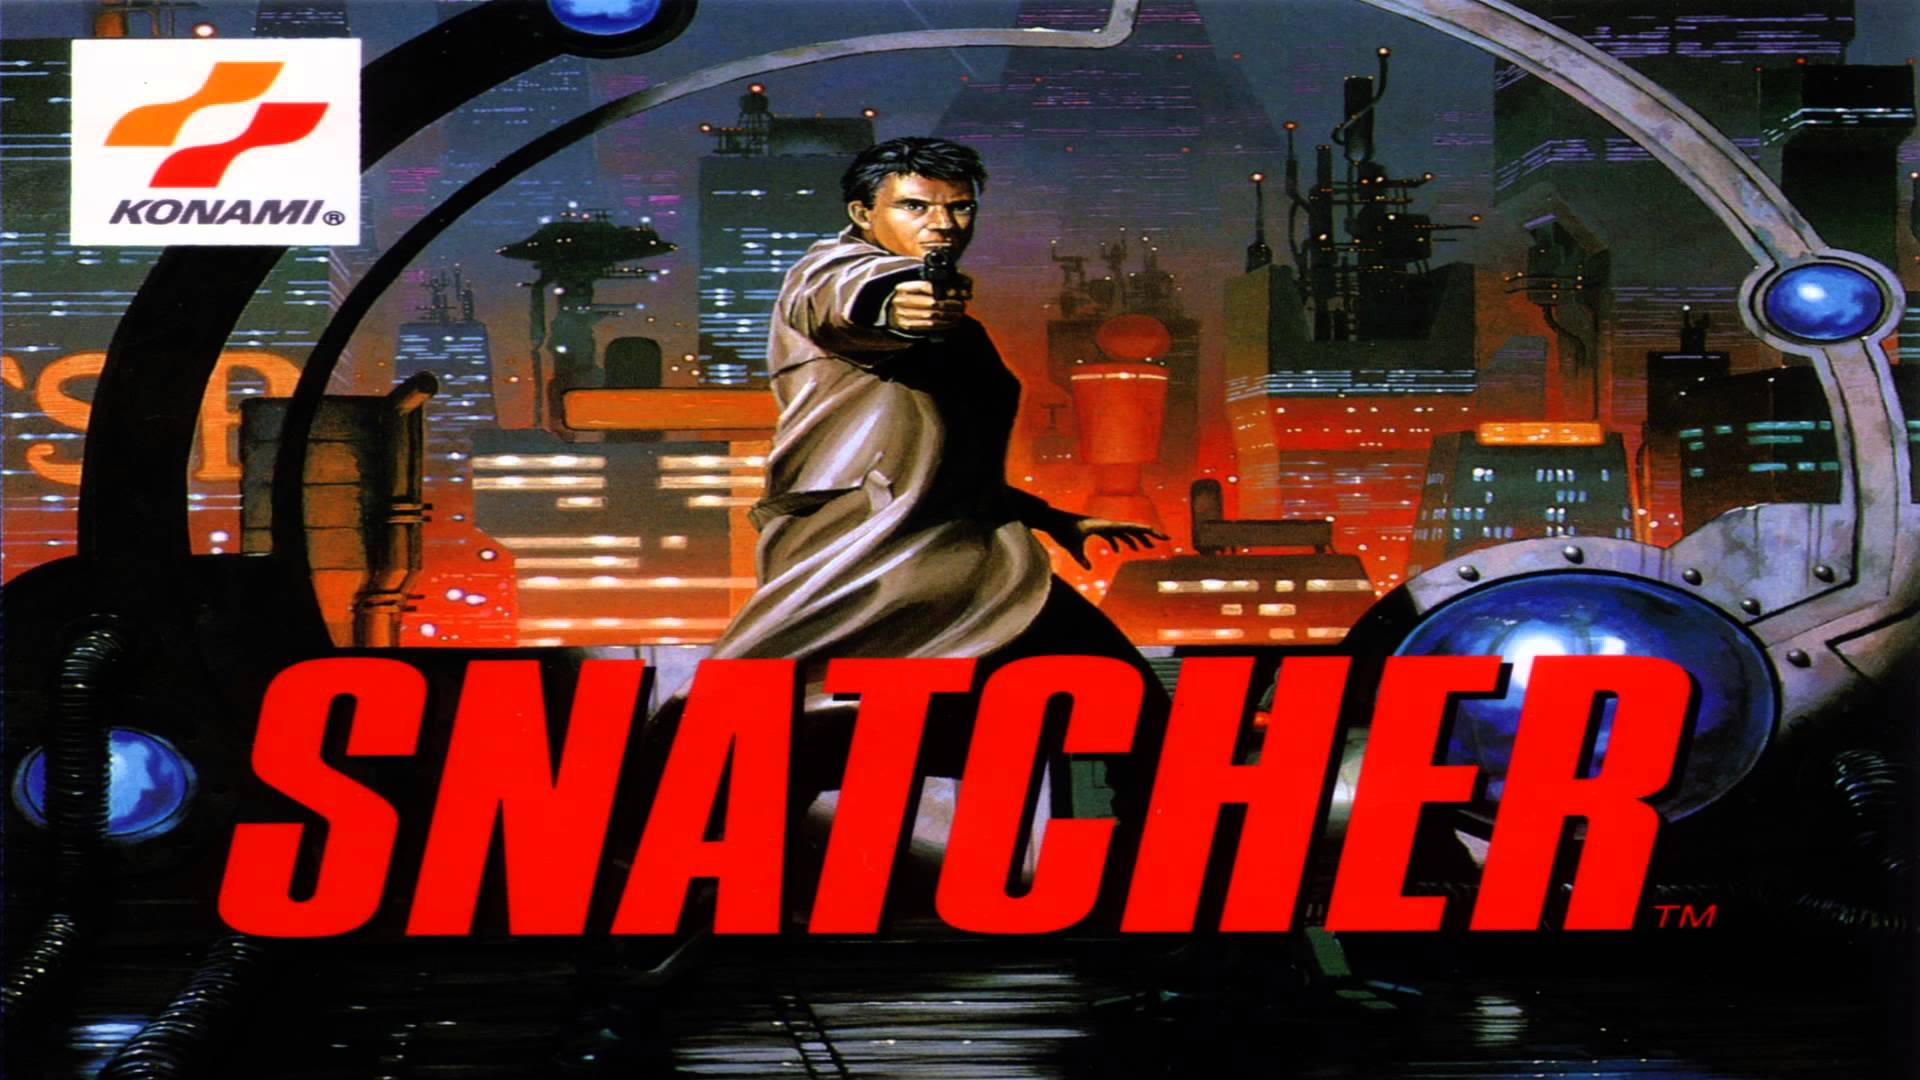 Photo of Konami's 'Snatcher' has been ported to the Virtual Boy